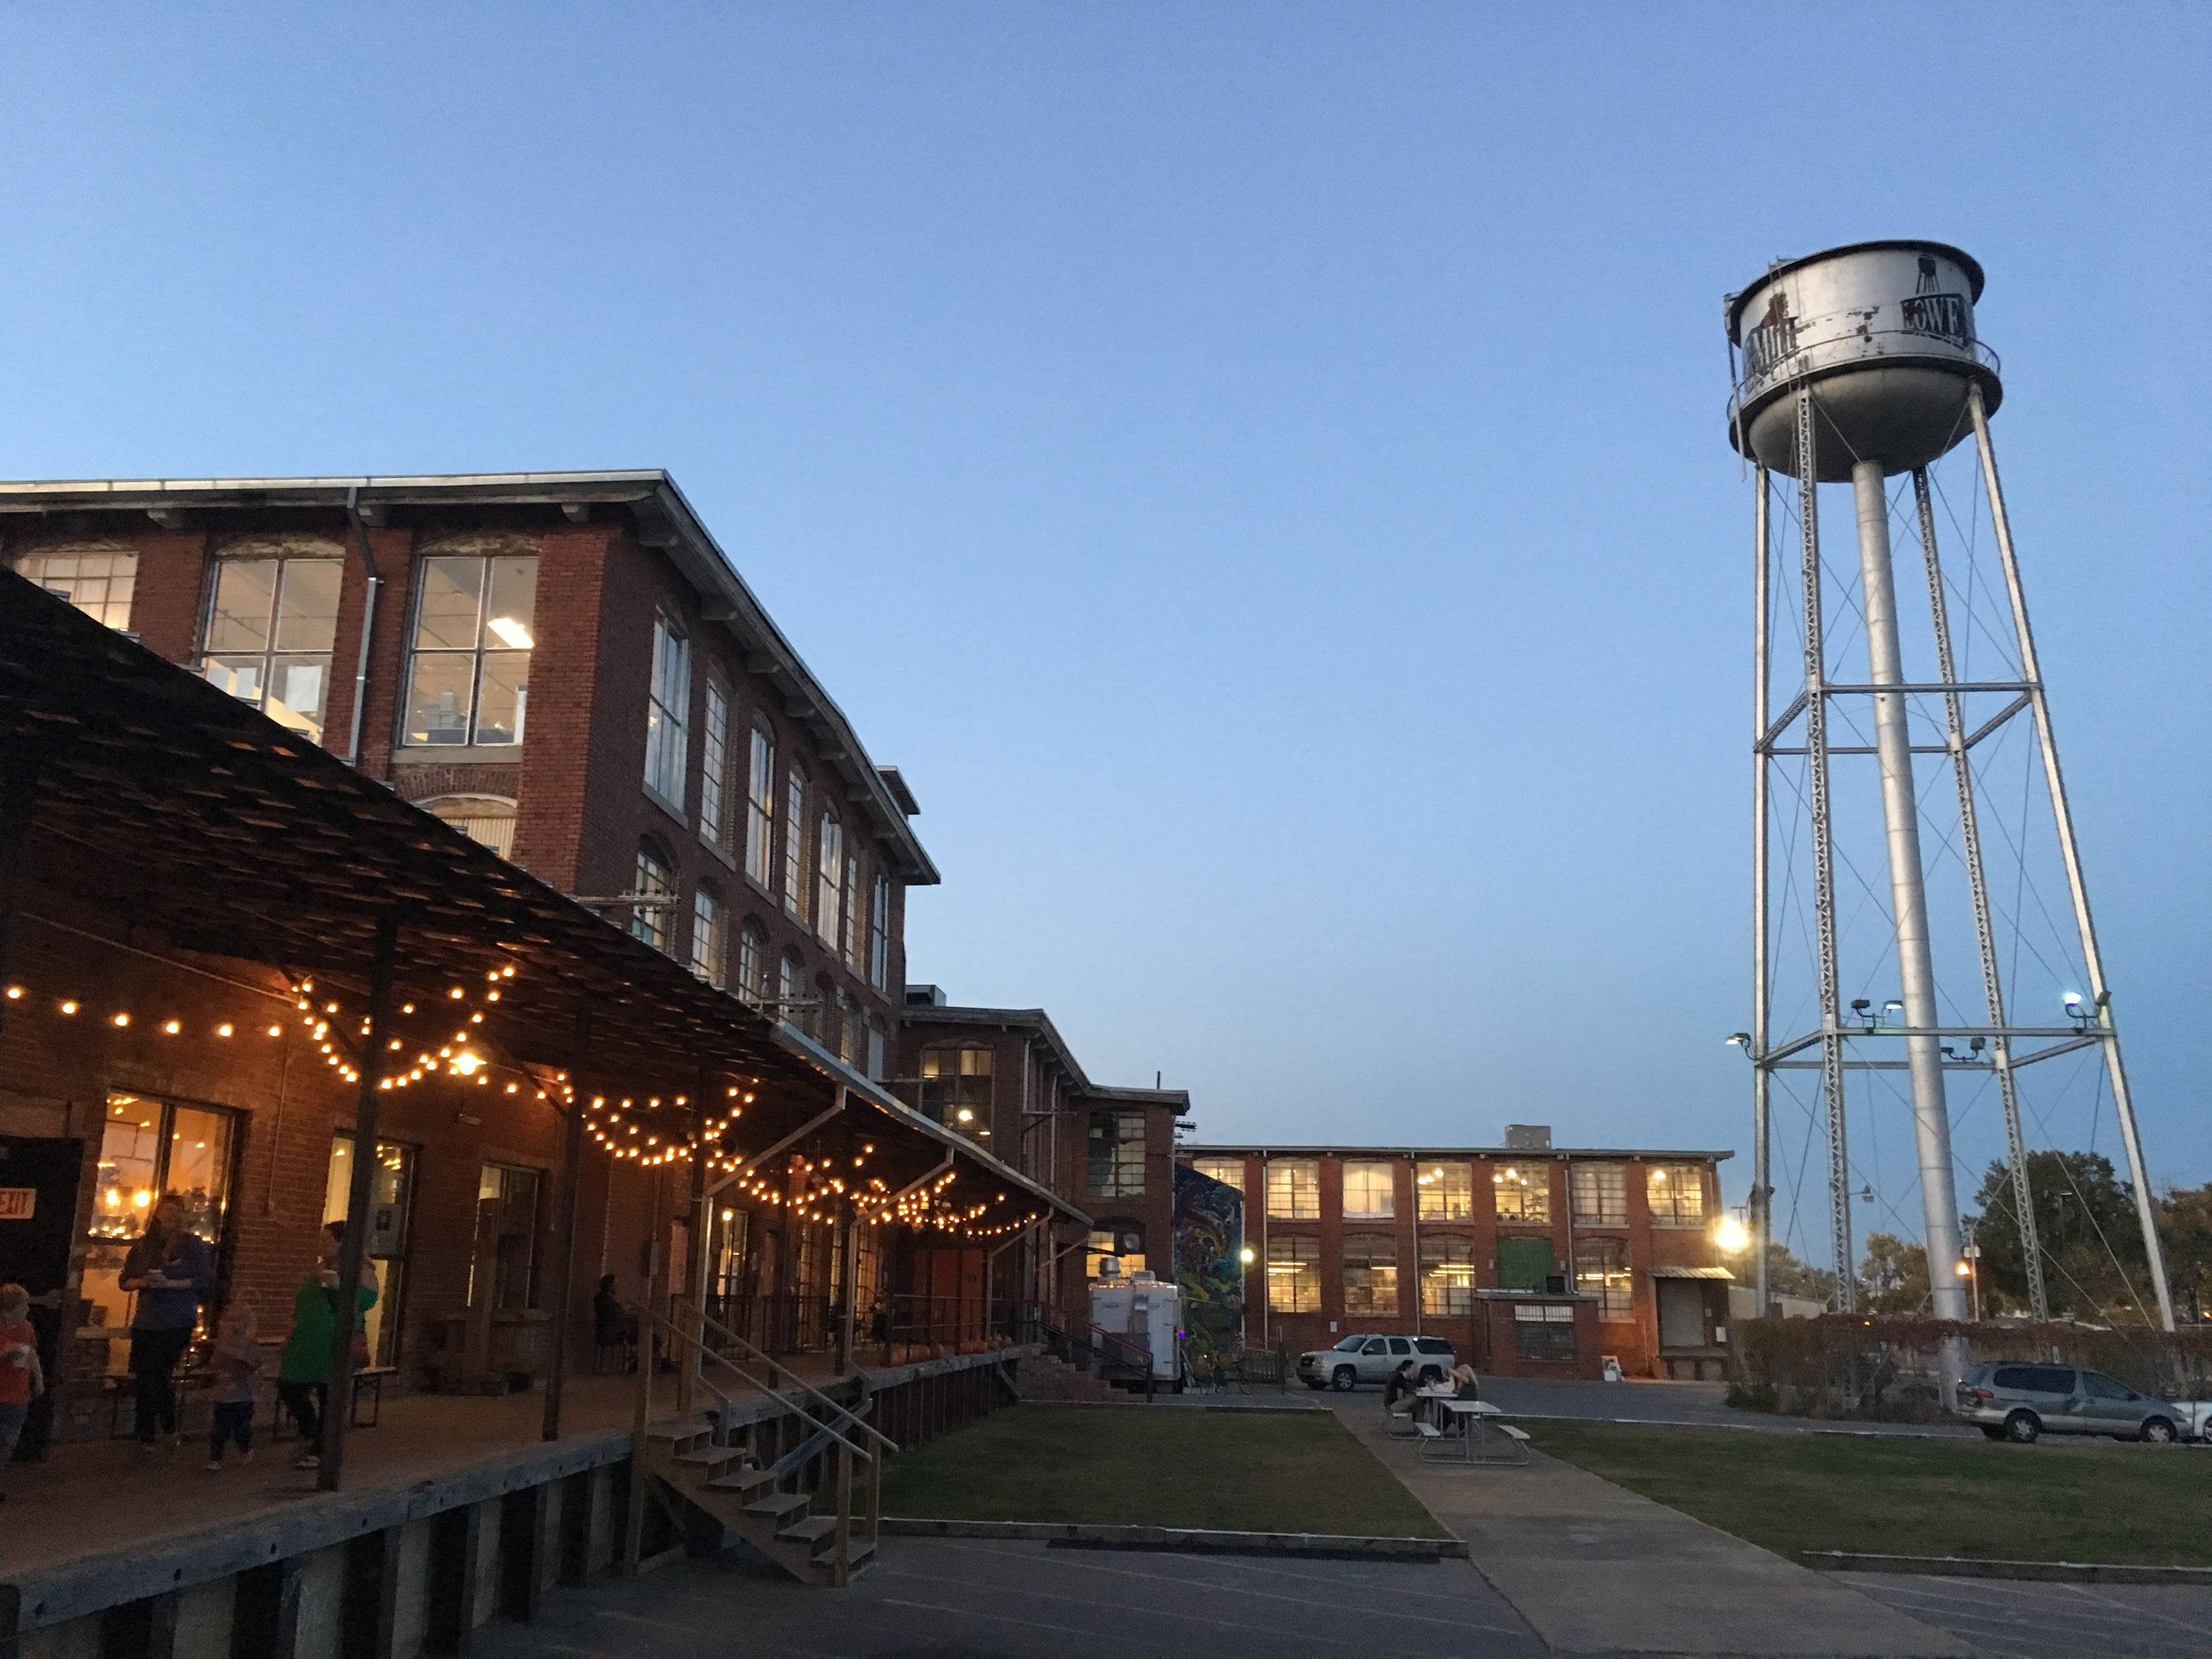 Lowe Mill Arts & Entertainment in Huntsville, Alabama, the largest privately owned arts collective in the US.